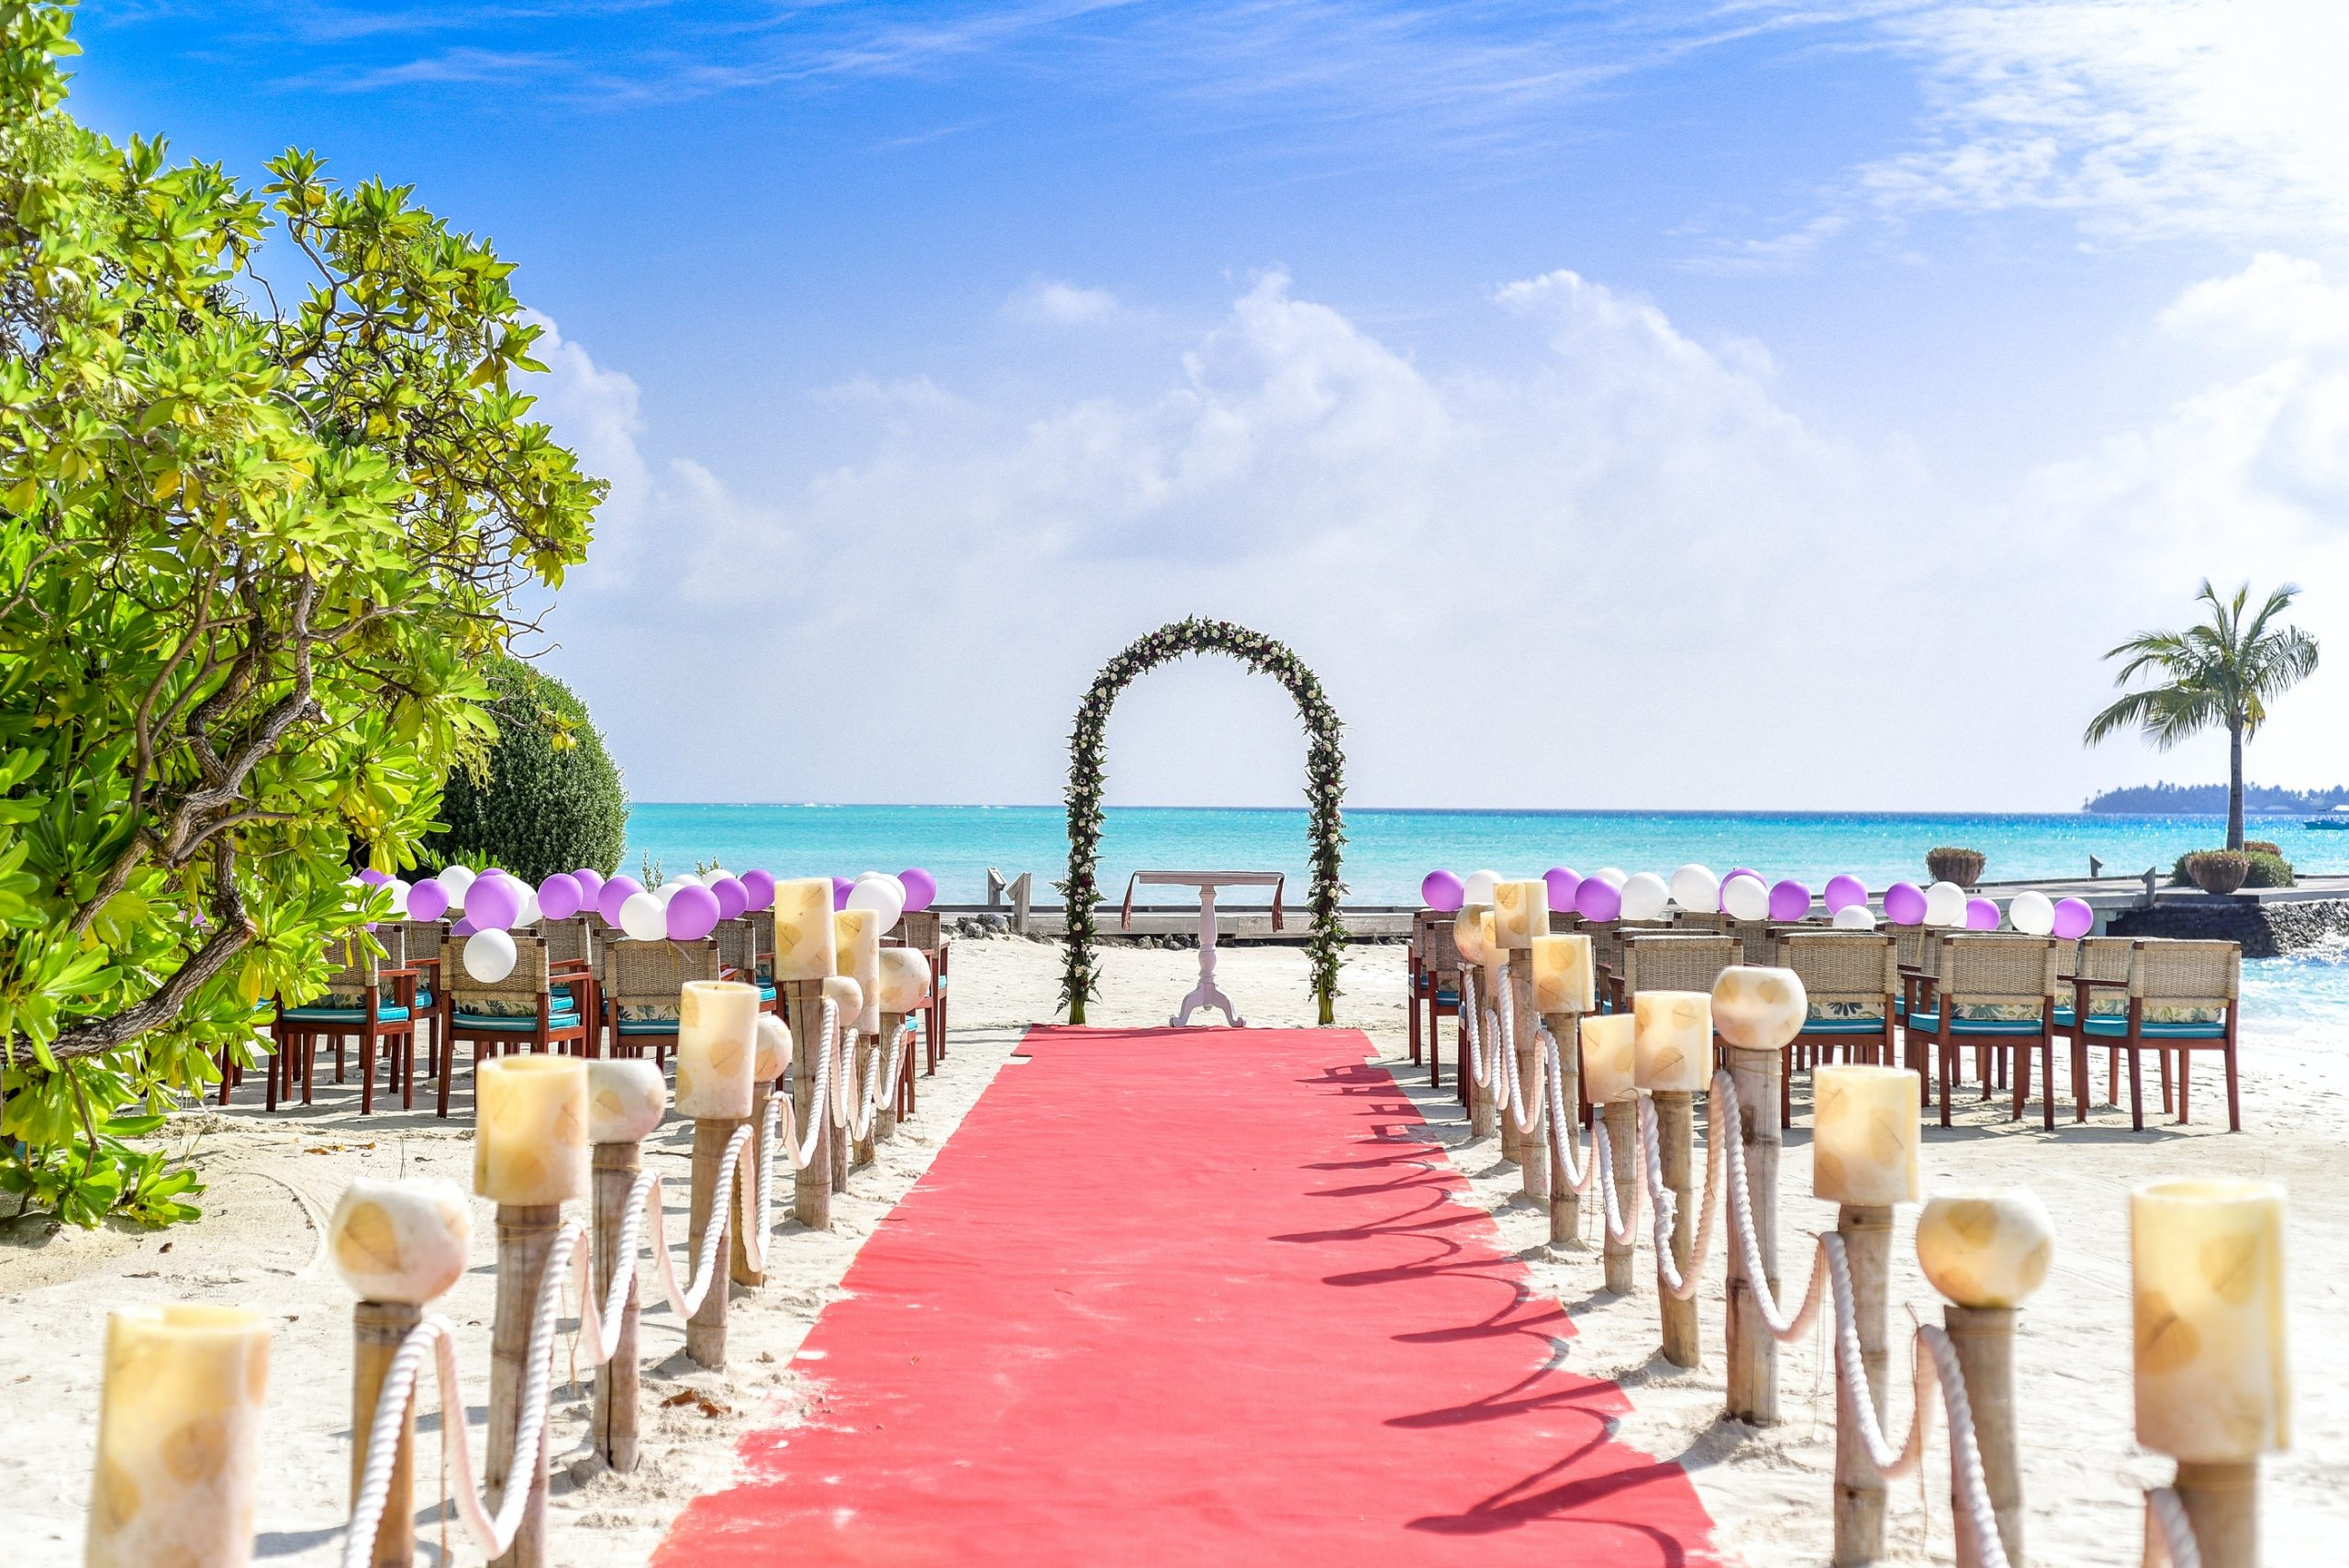 Beach wedding with aisle and seats leading out to ocean horizon.